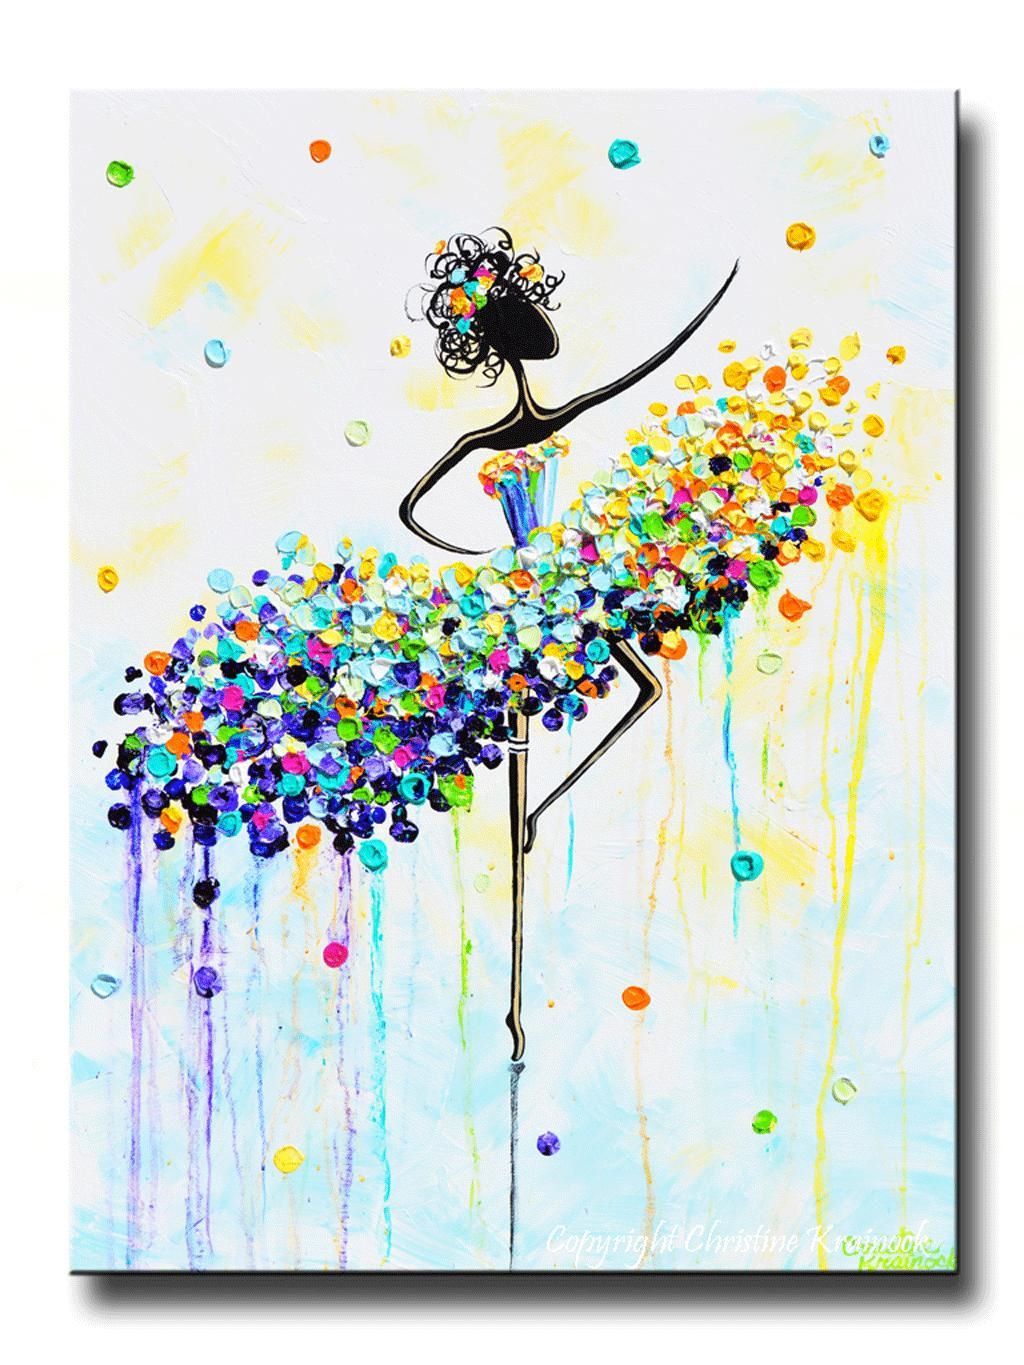 """GICLEE PRINT Art Abstract Dancer Painting Aqua Blue CANVAS Prints Colorful Wall Decor Sizes to 60"""" from contemporaryartbychristine.com."""